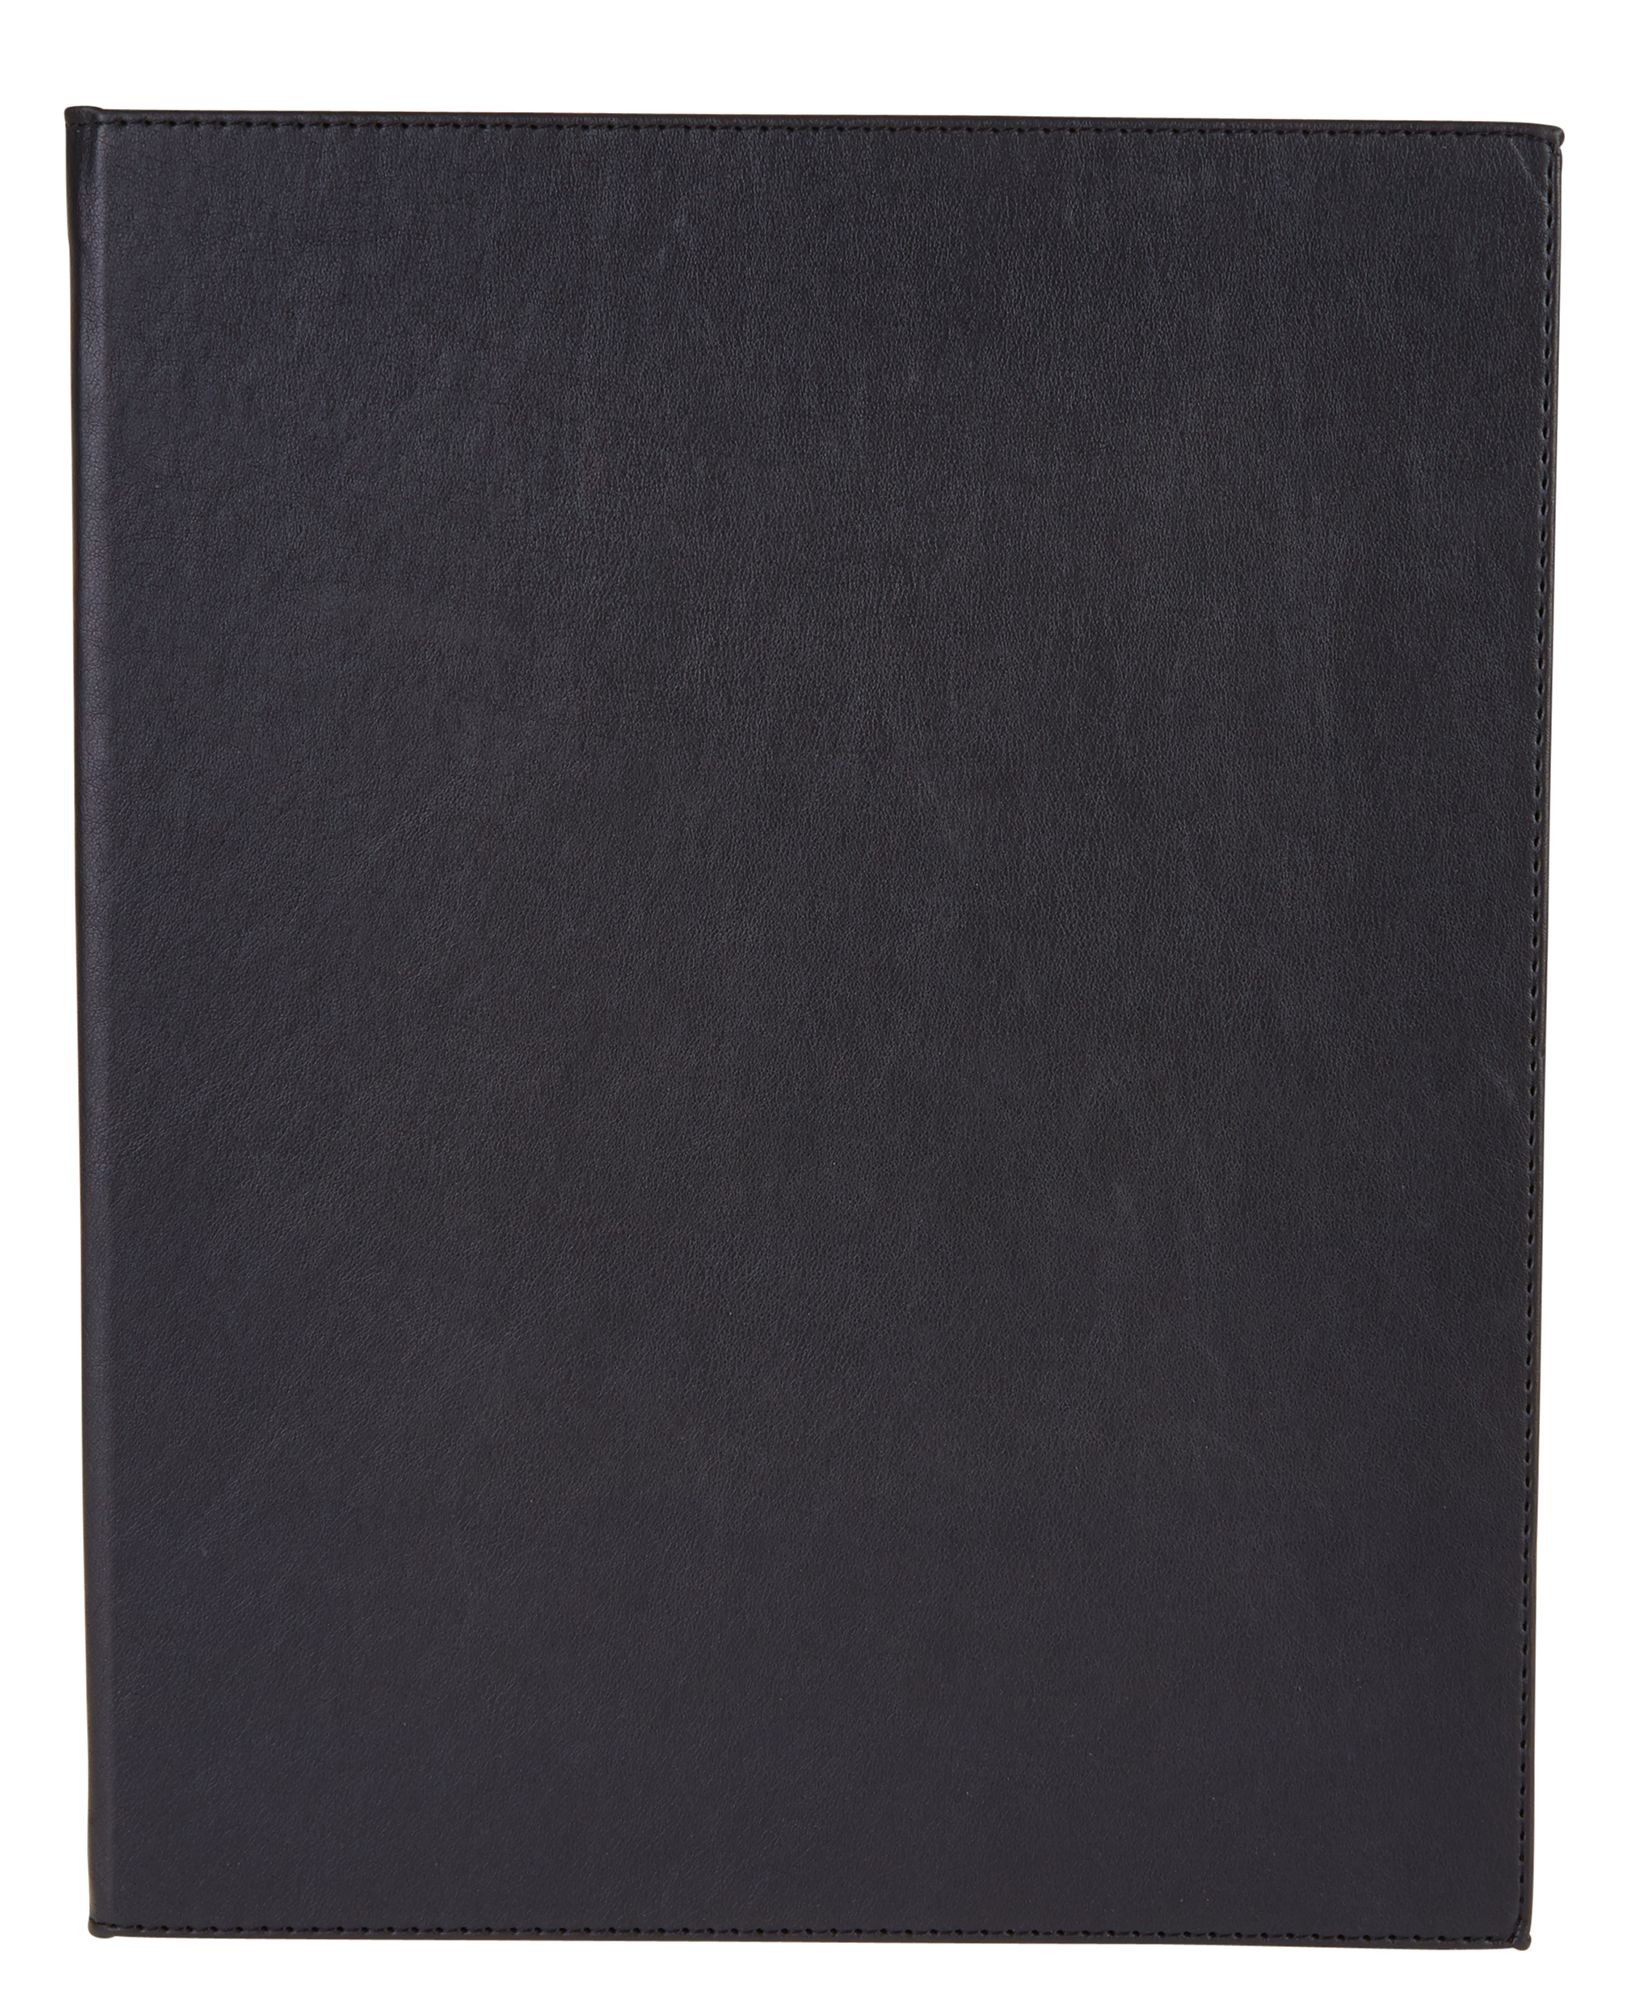 "Winco LMD-811BK 8-1/2"" x 11"" Black Leatherette Two Panel Menu Cover"